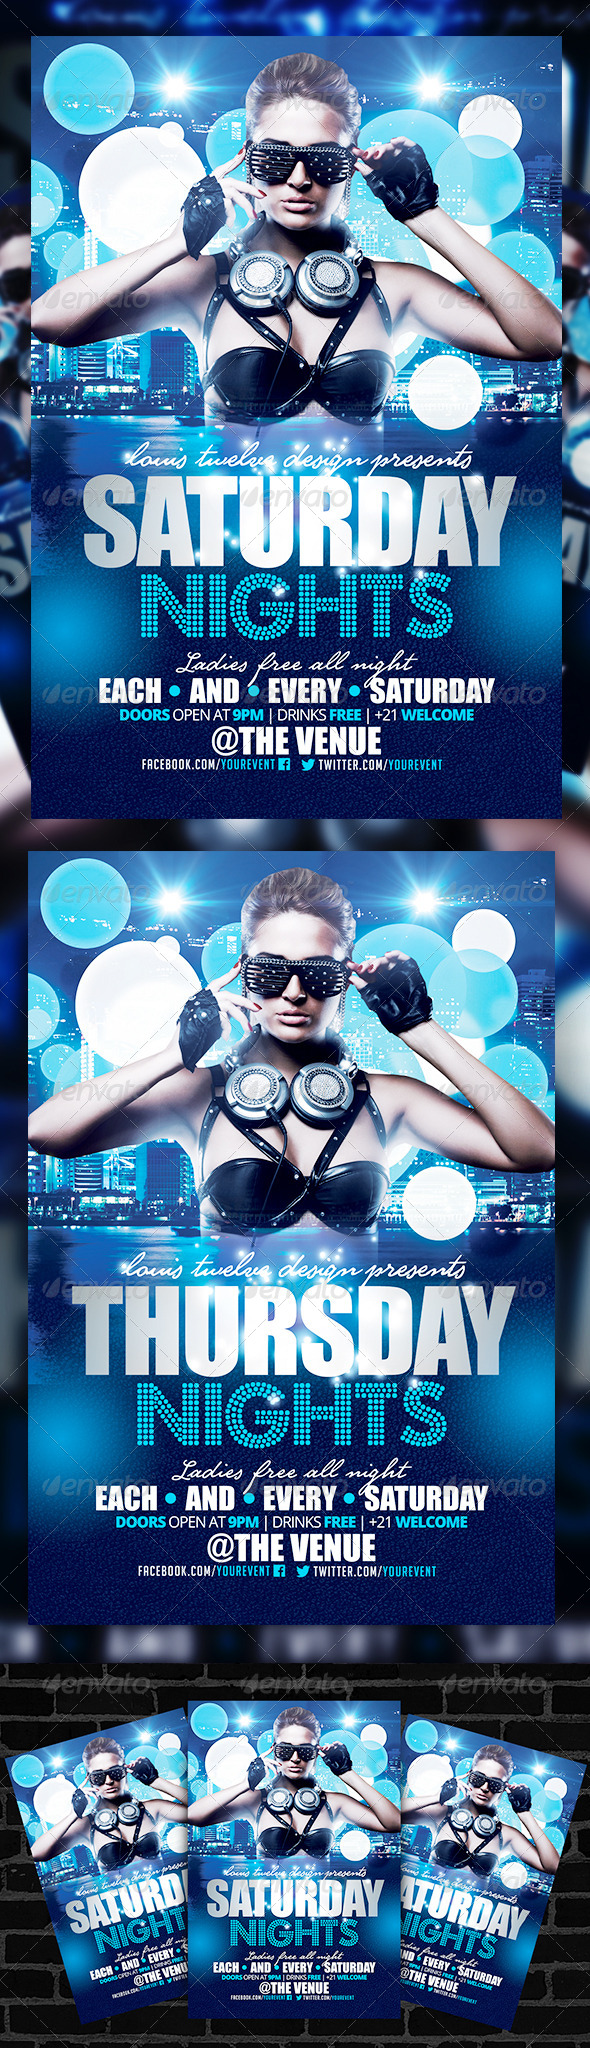 Saturday Nights Flyer Template - Clubs & Parties Events